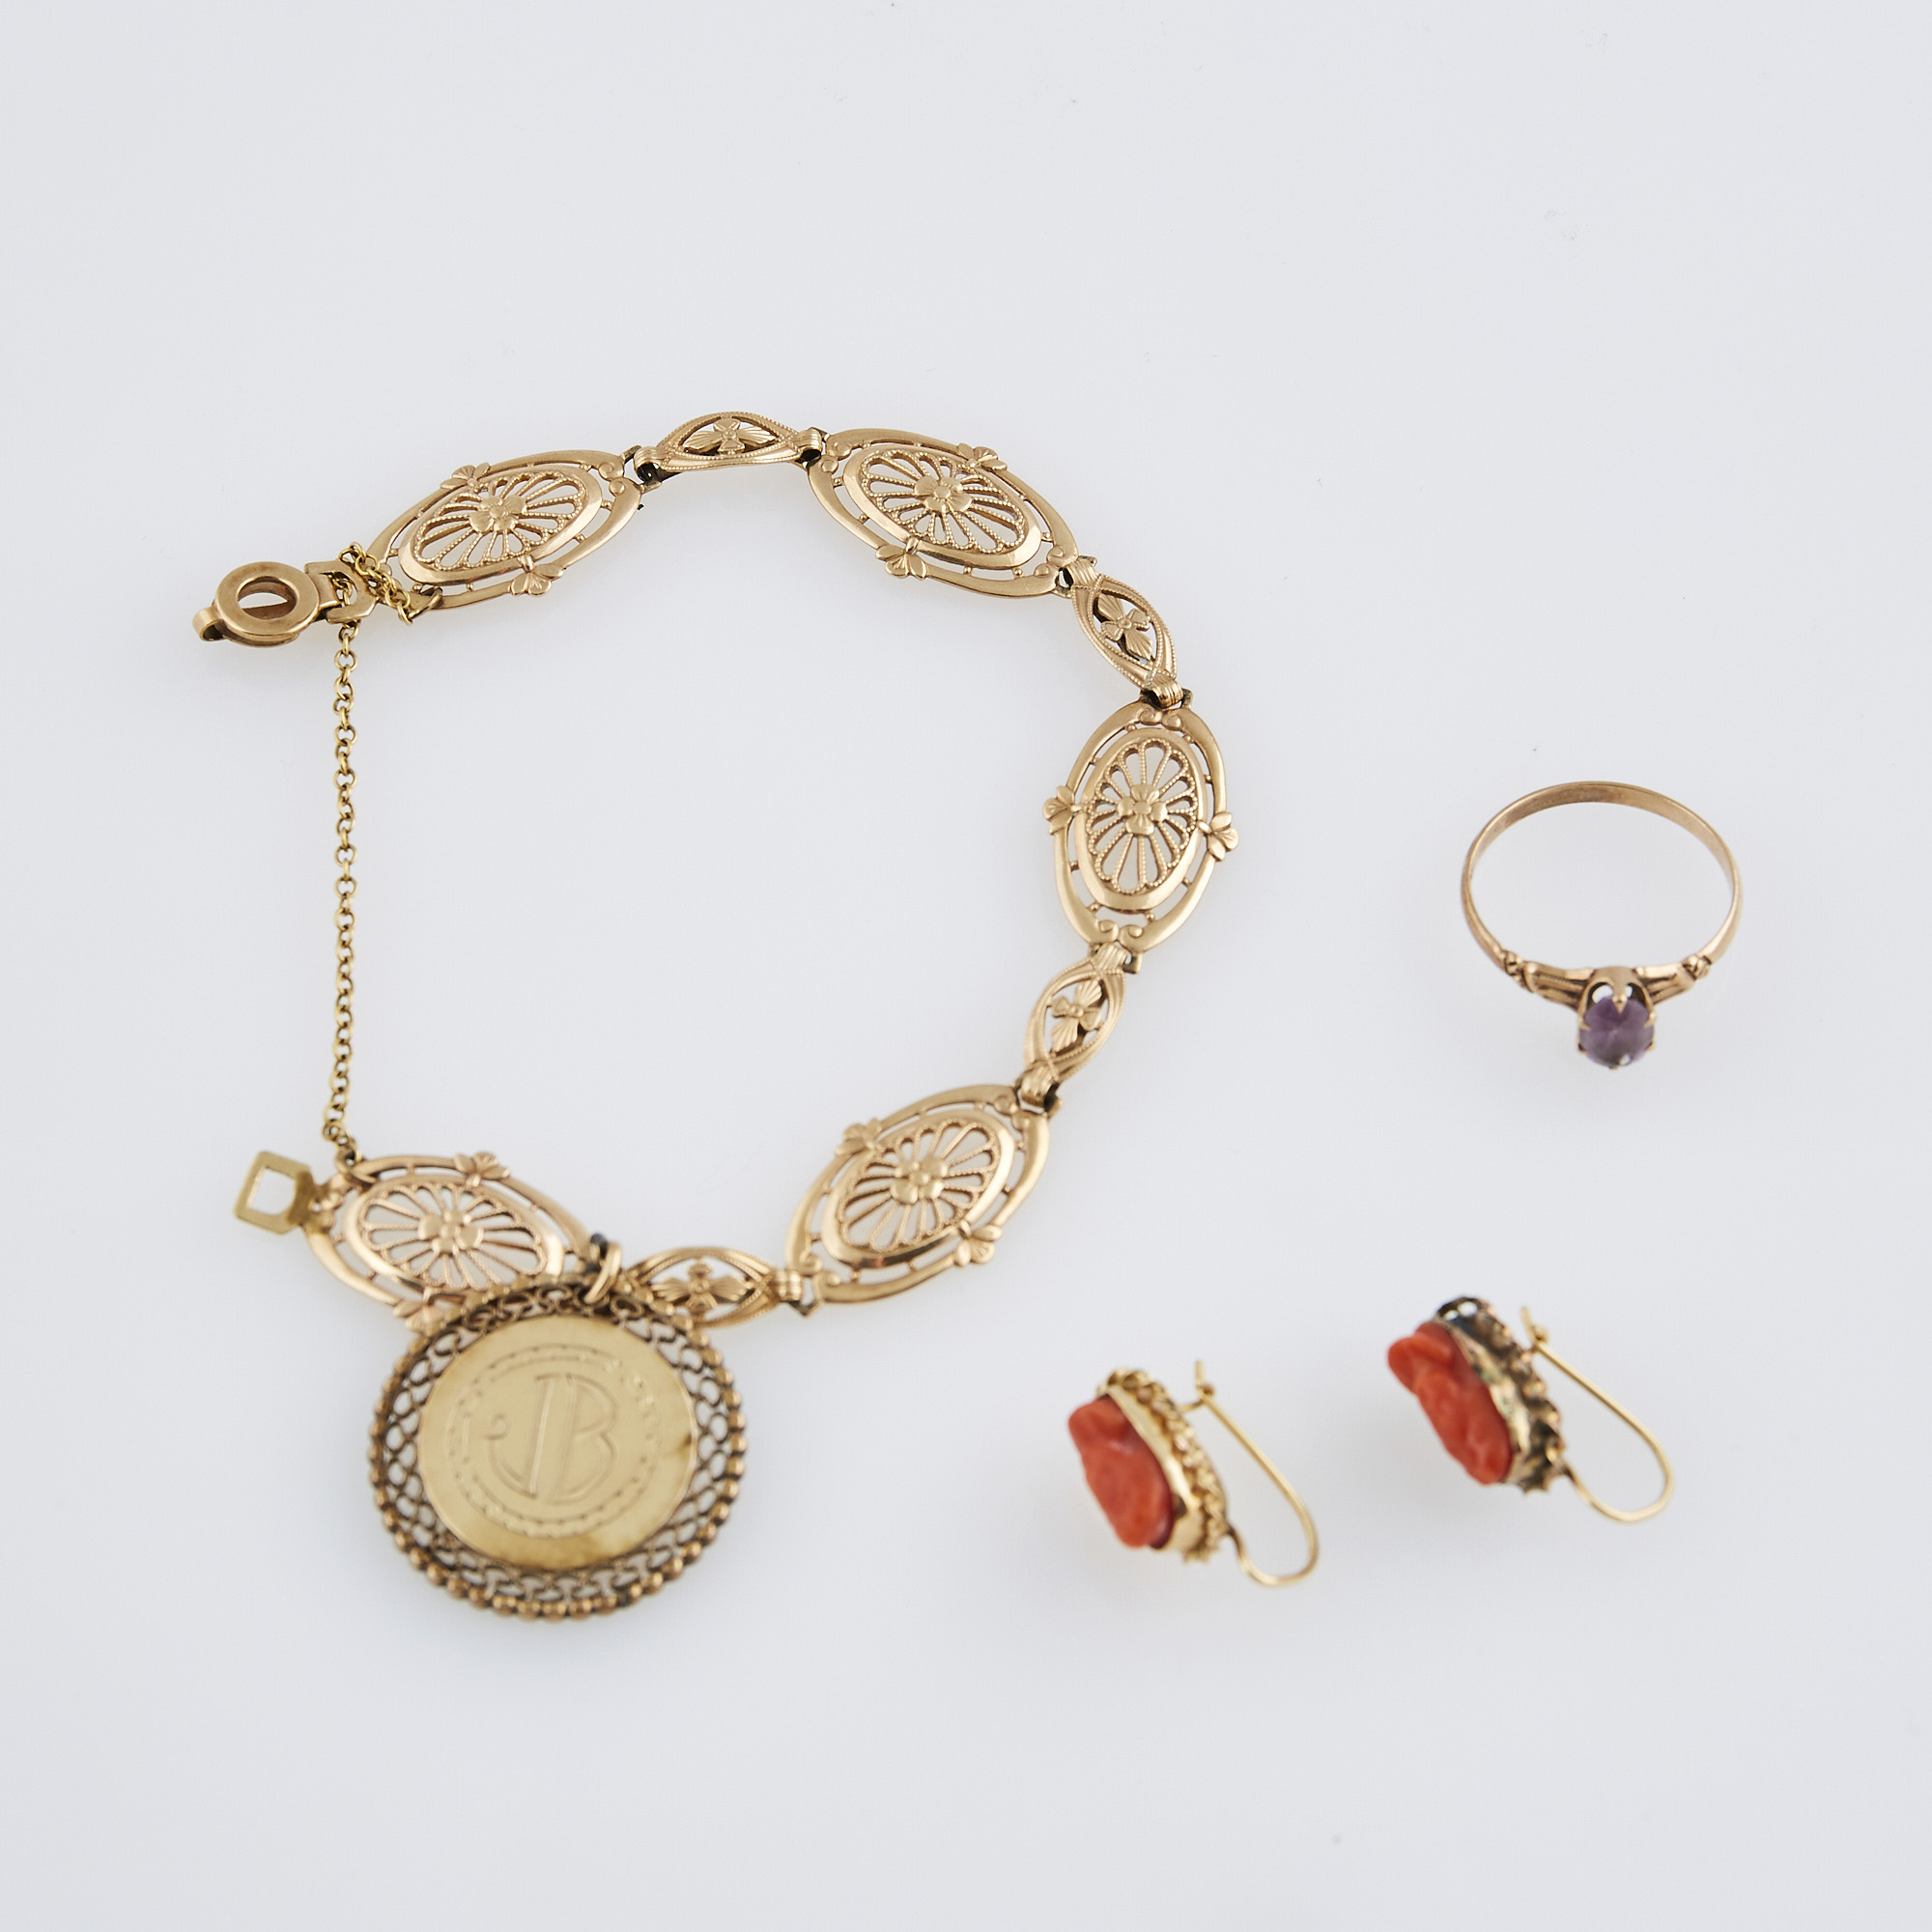 Lot image - Two Gold and Stone Earrings, Ring and Charm Bracelet with charm attached, 10K 9 dwt. all